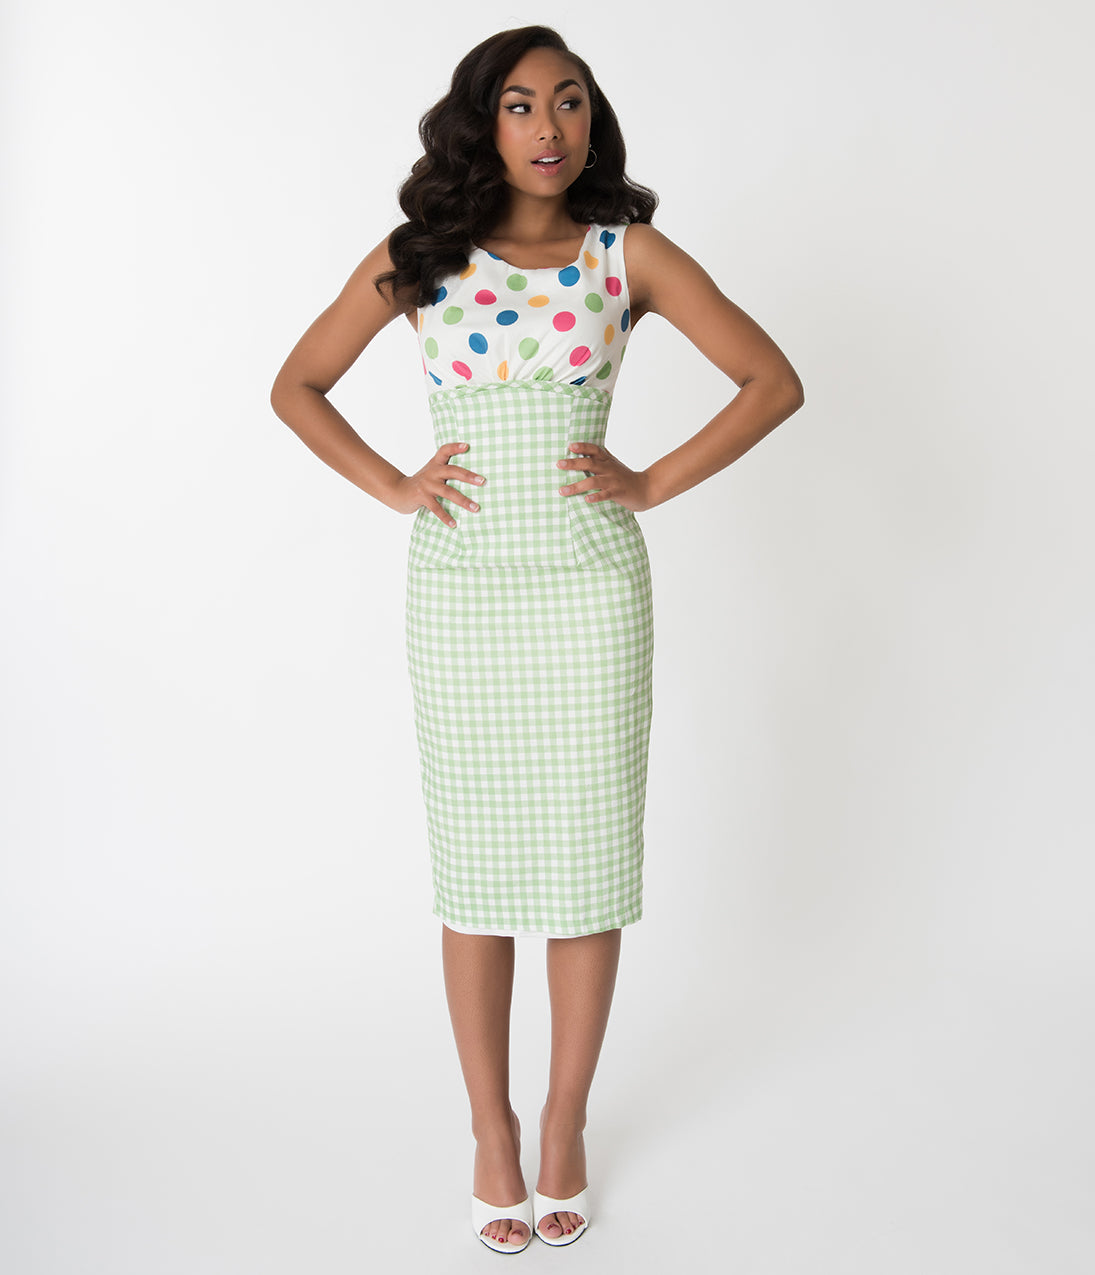 1960s Dresses | 60s Dresses Mod, Mini, Jakie O, Hippie Barbie X Unique Vintage 1960S Lunch On The Terrace Pencil Dress $118.00 AT vintagedancer.com